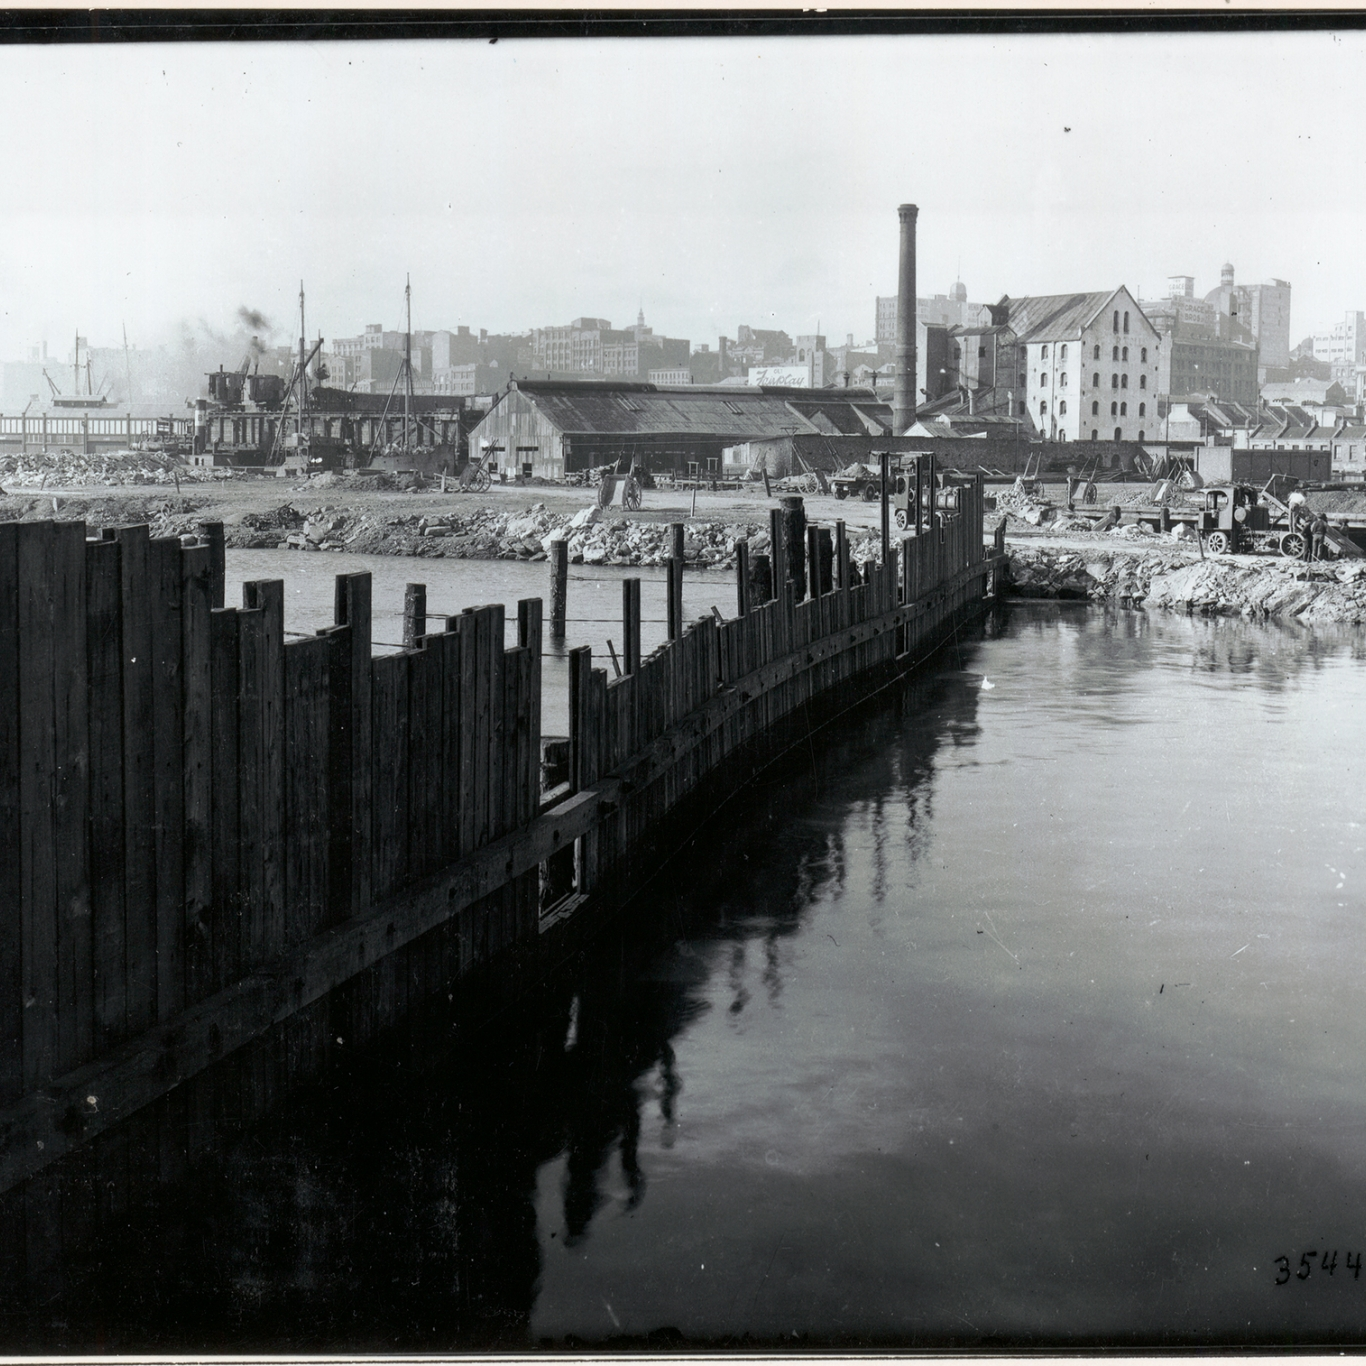 Black and white photograph of fenceline going into water and industrial area beyond.